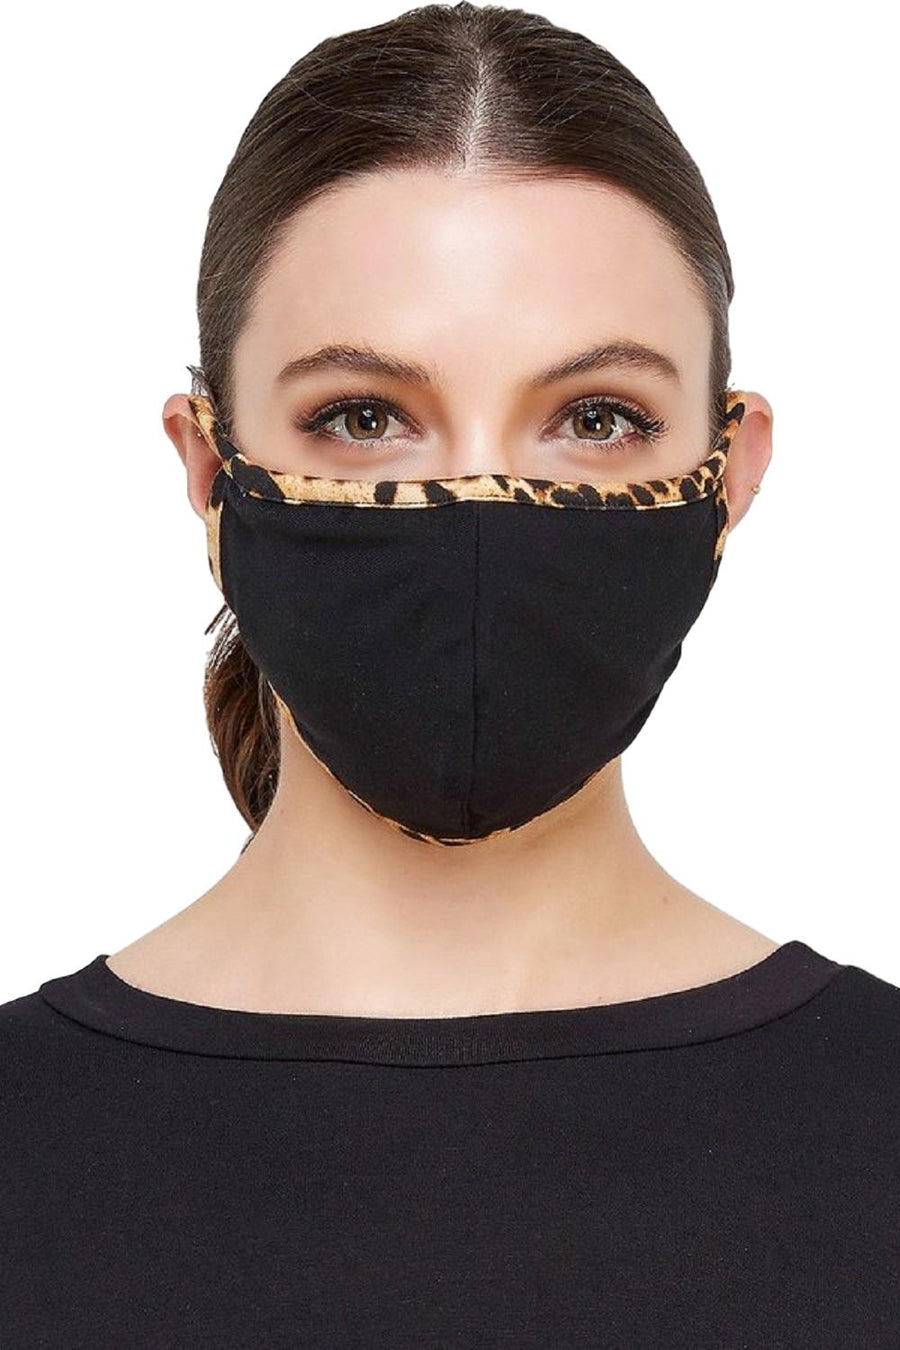 Face Mouth Nose Mask Cover Protection Reusable Cotton Blend Five Layer Filter Adjustable One Size Unisex Black Leopard